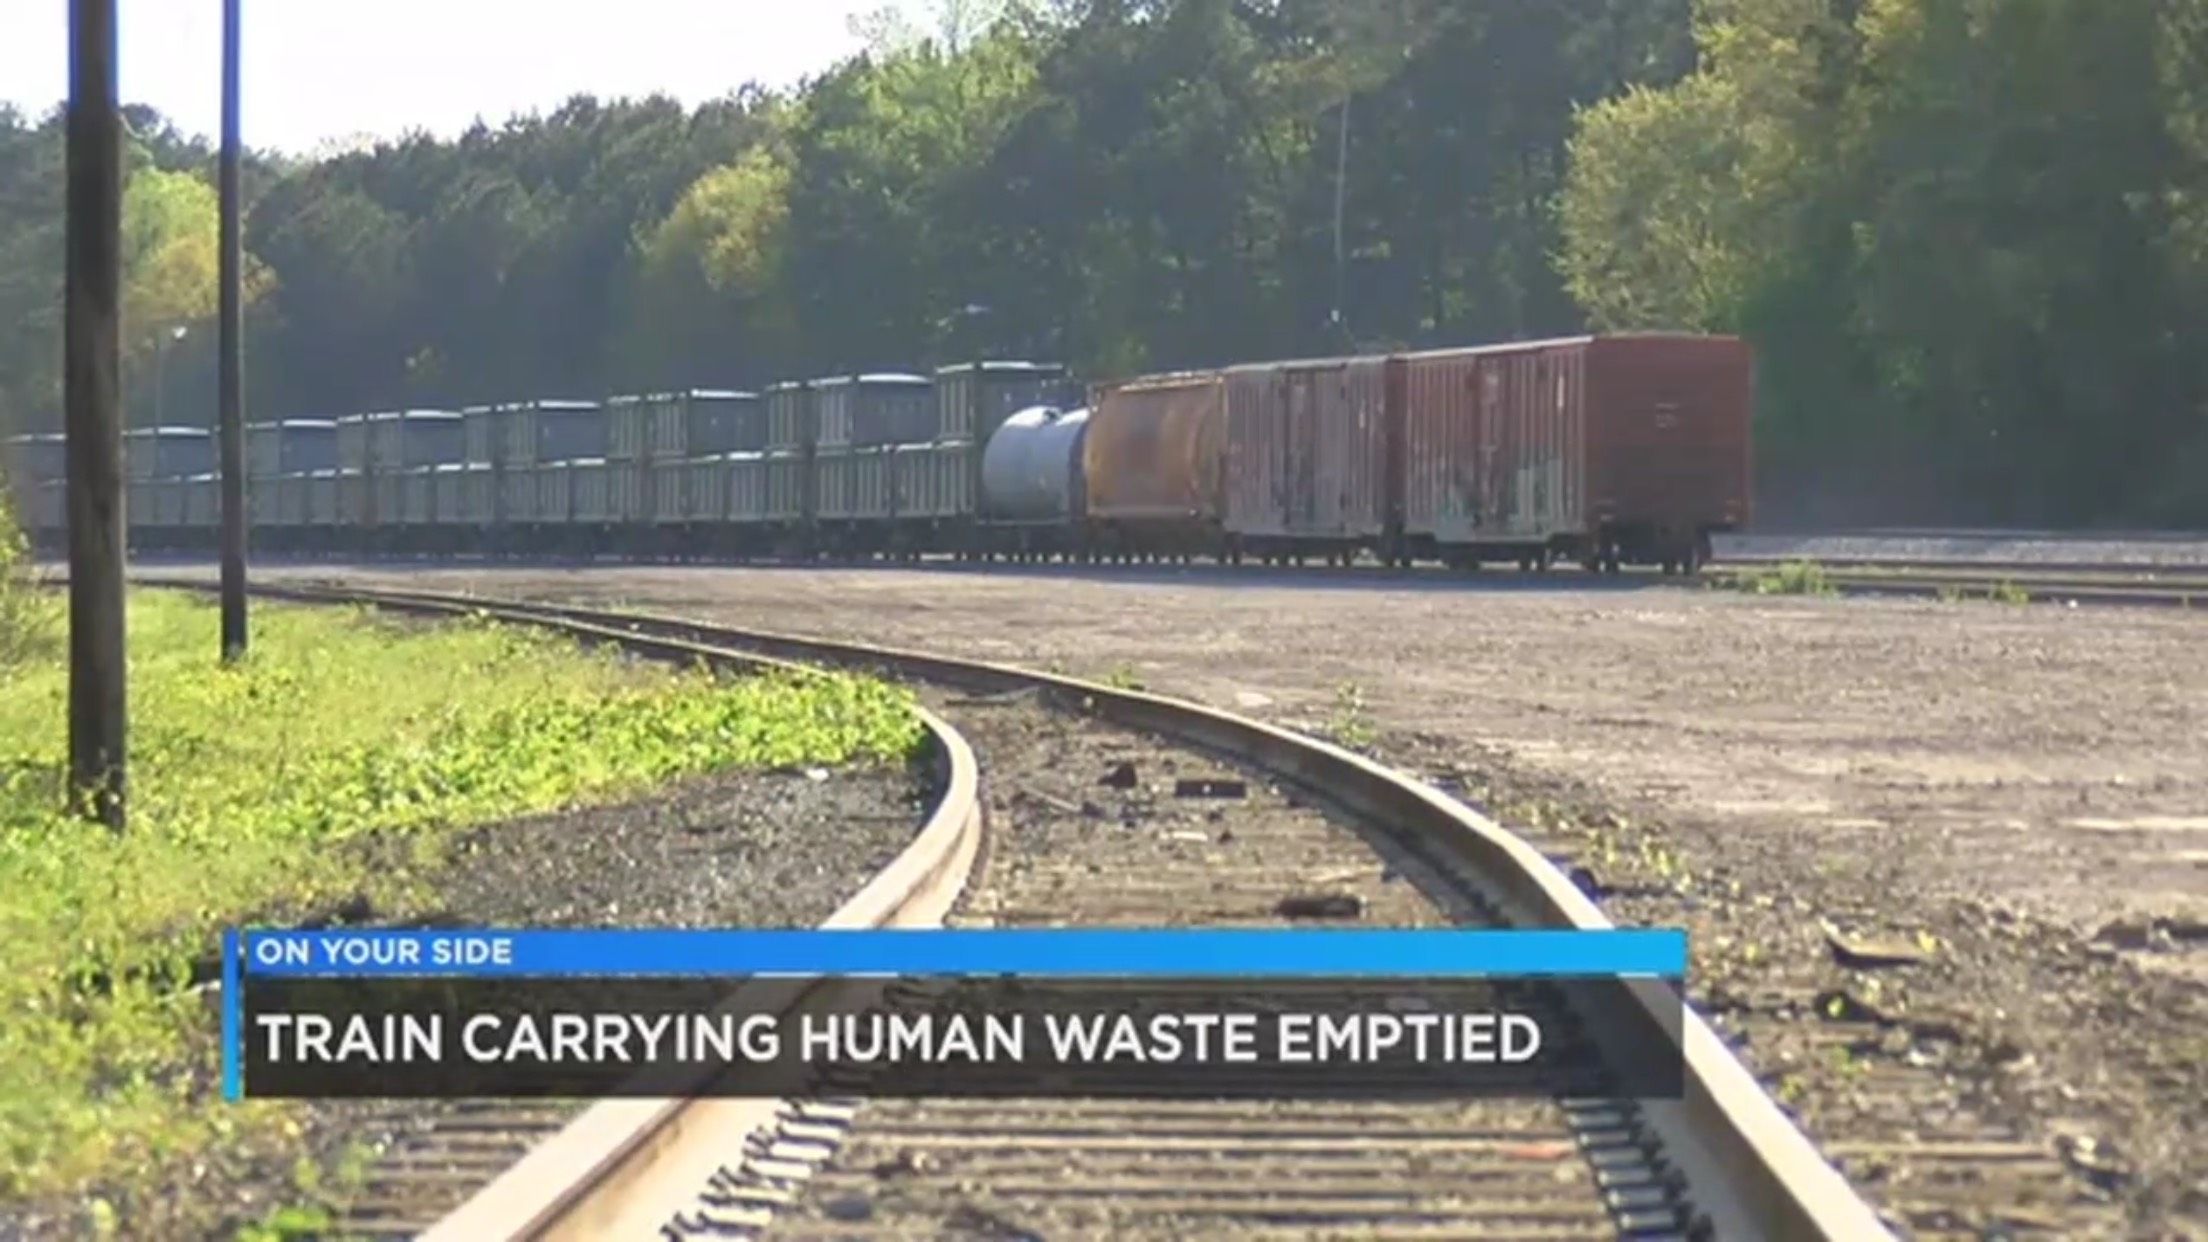 Train Carrying Human Waste Emptied